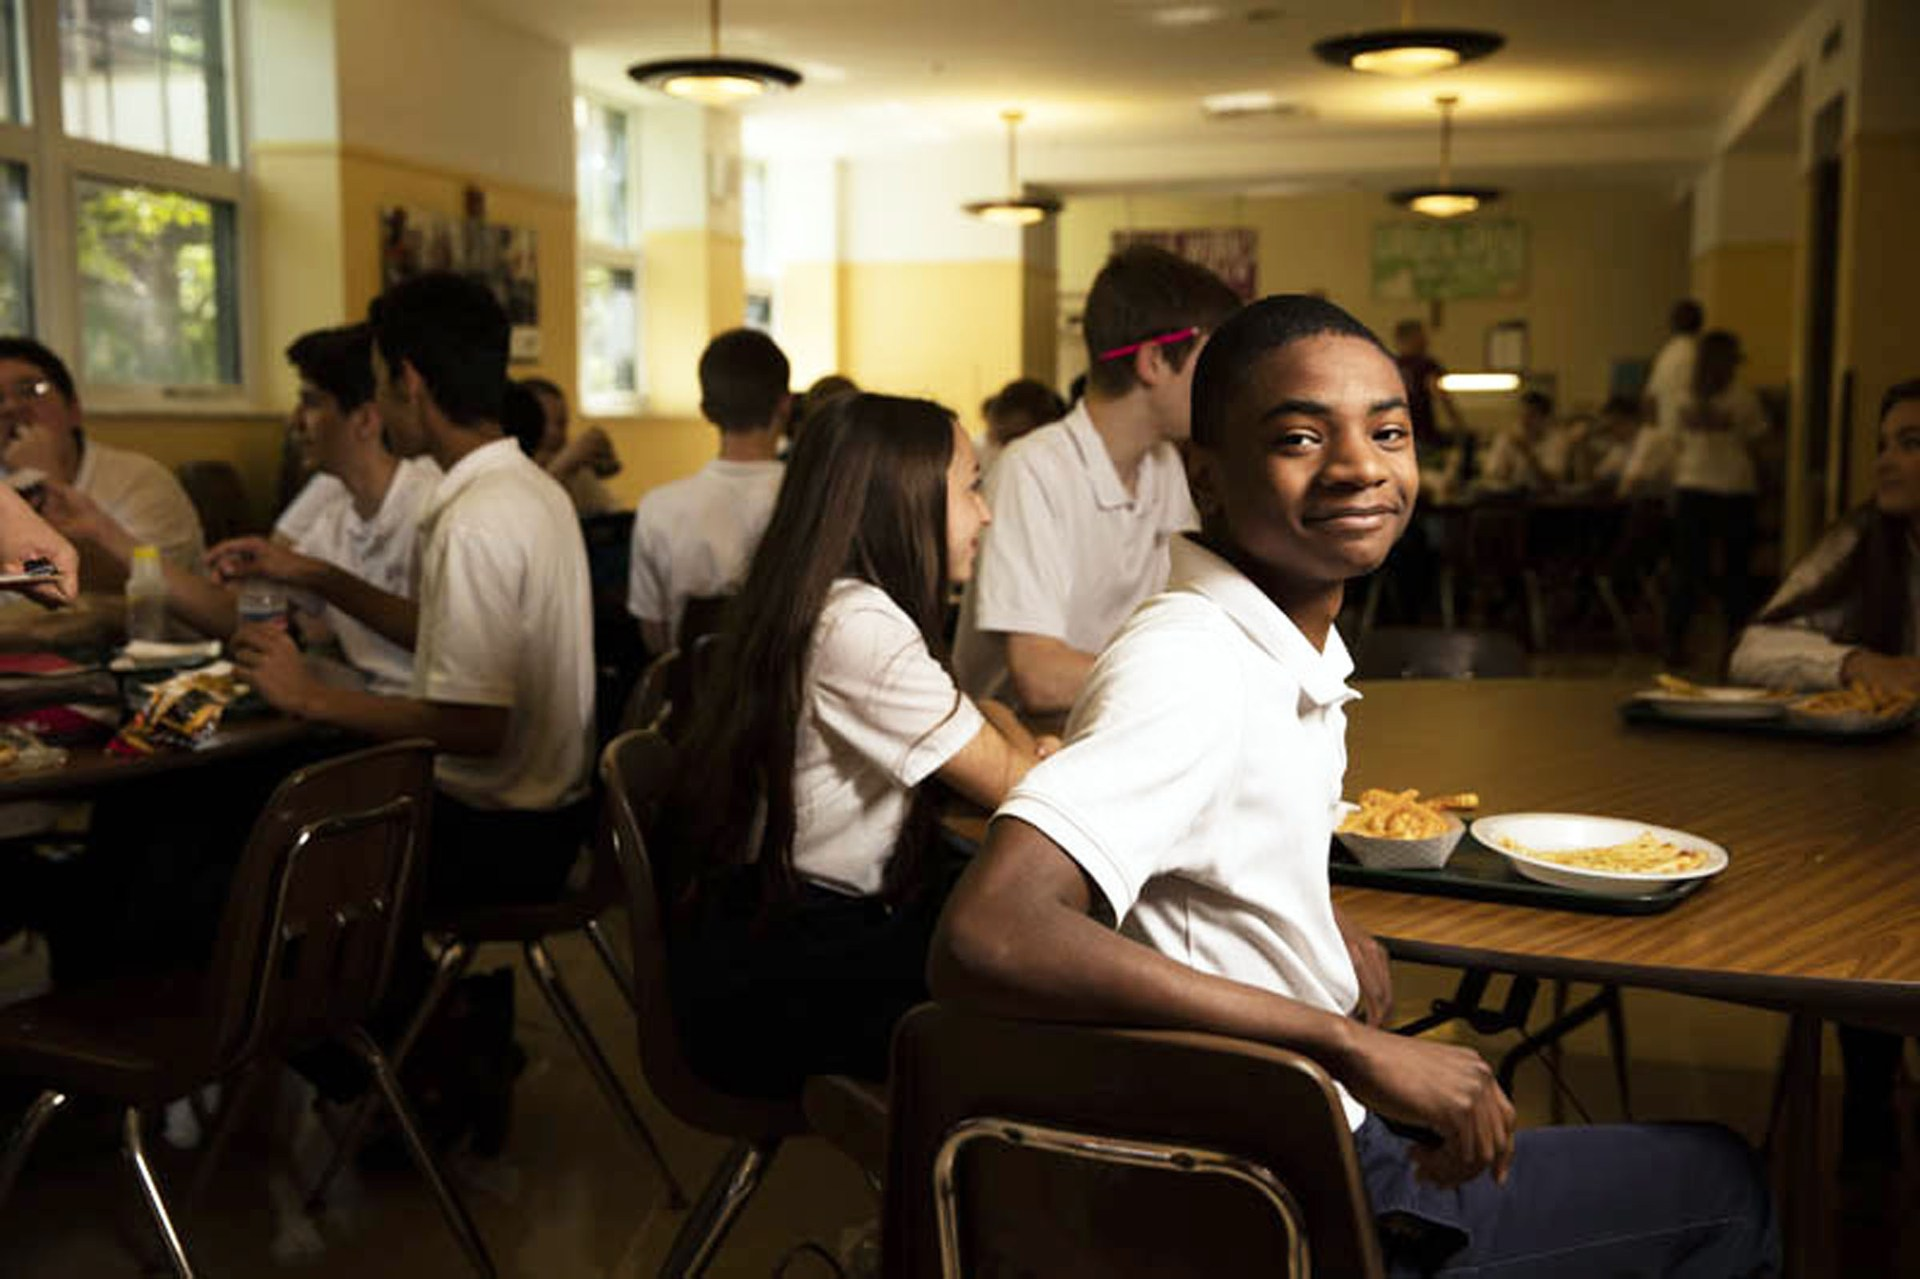 A student enjoys lunch in the OLSH cafeteria